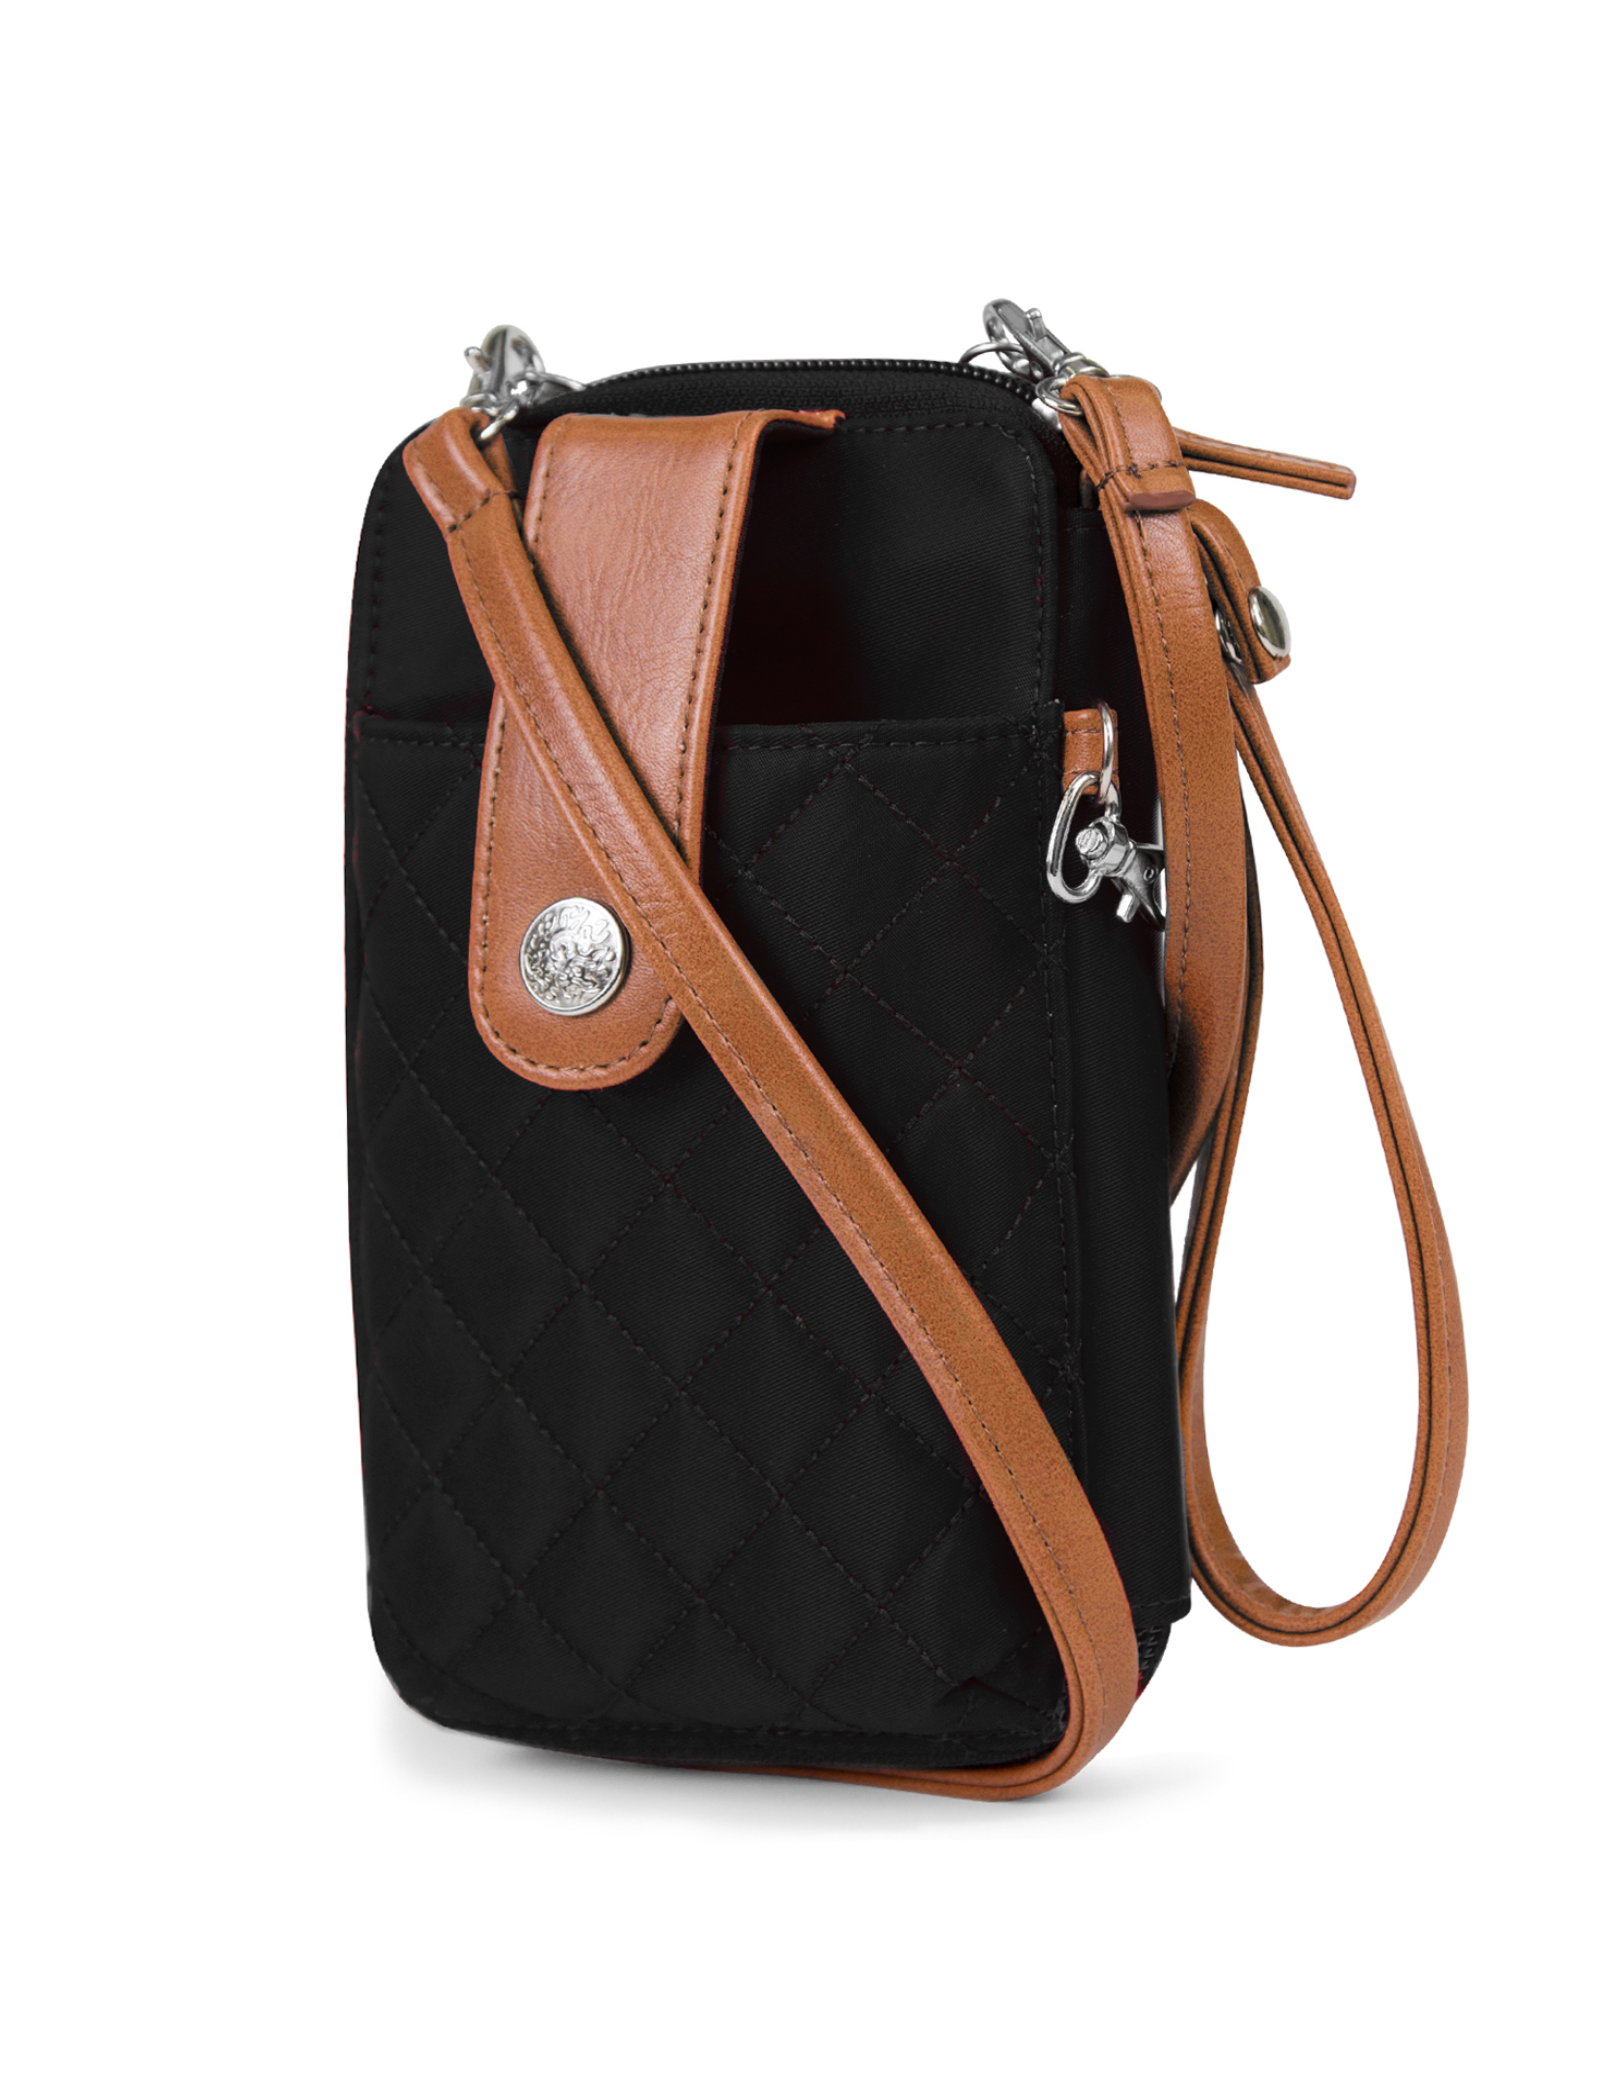 Jacqui Crossbody Cell Phone Wallet - Mundi Wallets - Women's Wallet - Wristlet - Crossbody Bag - Key Chain - Black Brown - RFID protected Organizer Wallet